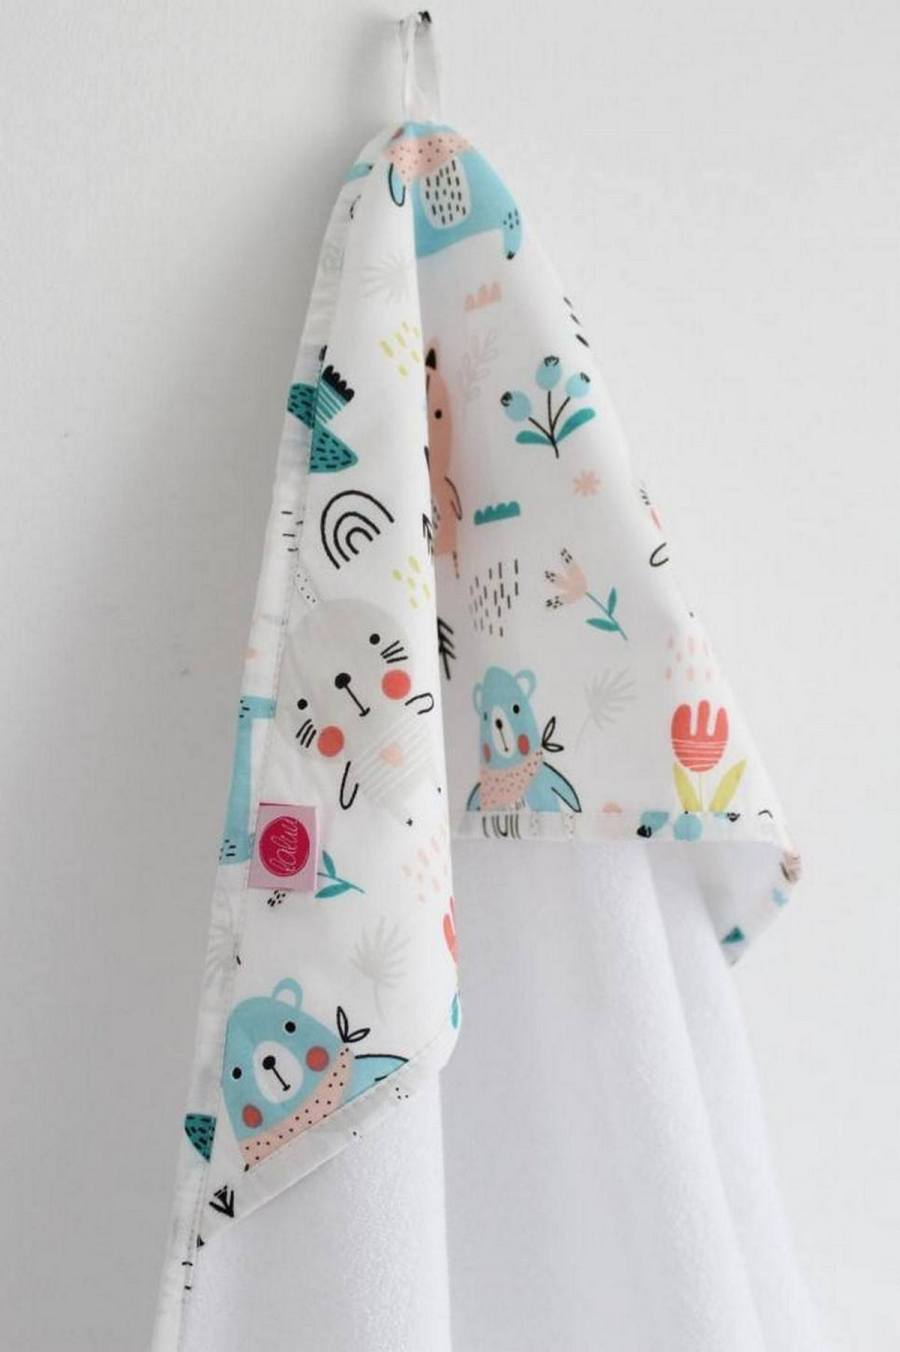 The little ones deserve comfort and softness at all times. And, as we said before, the preparation of the outfit needs to be carefully done. An essential part of this set of articles, the baby bath towel is one of their greatest allies.